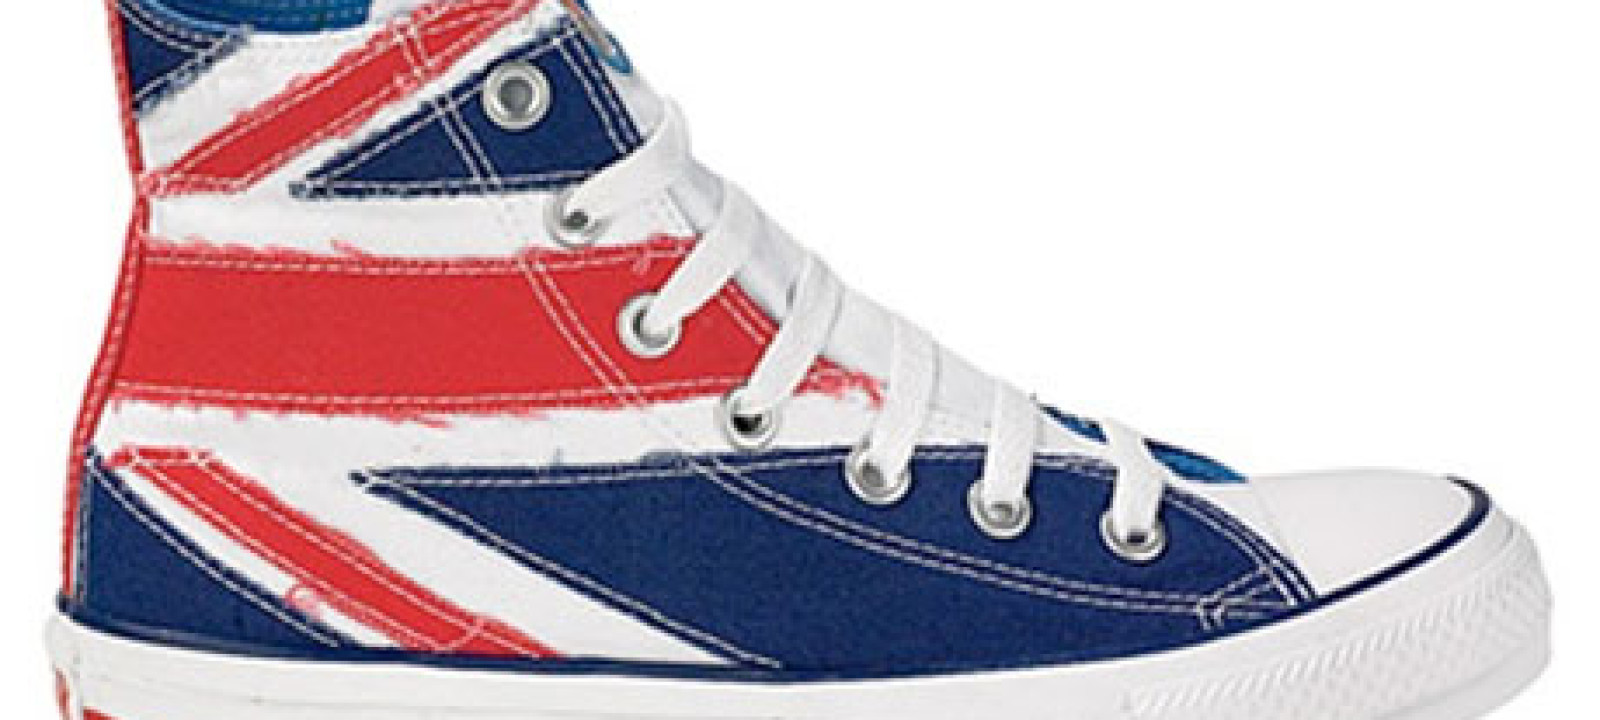 Union flag shoe